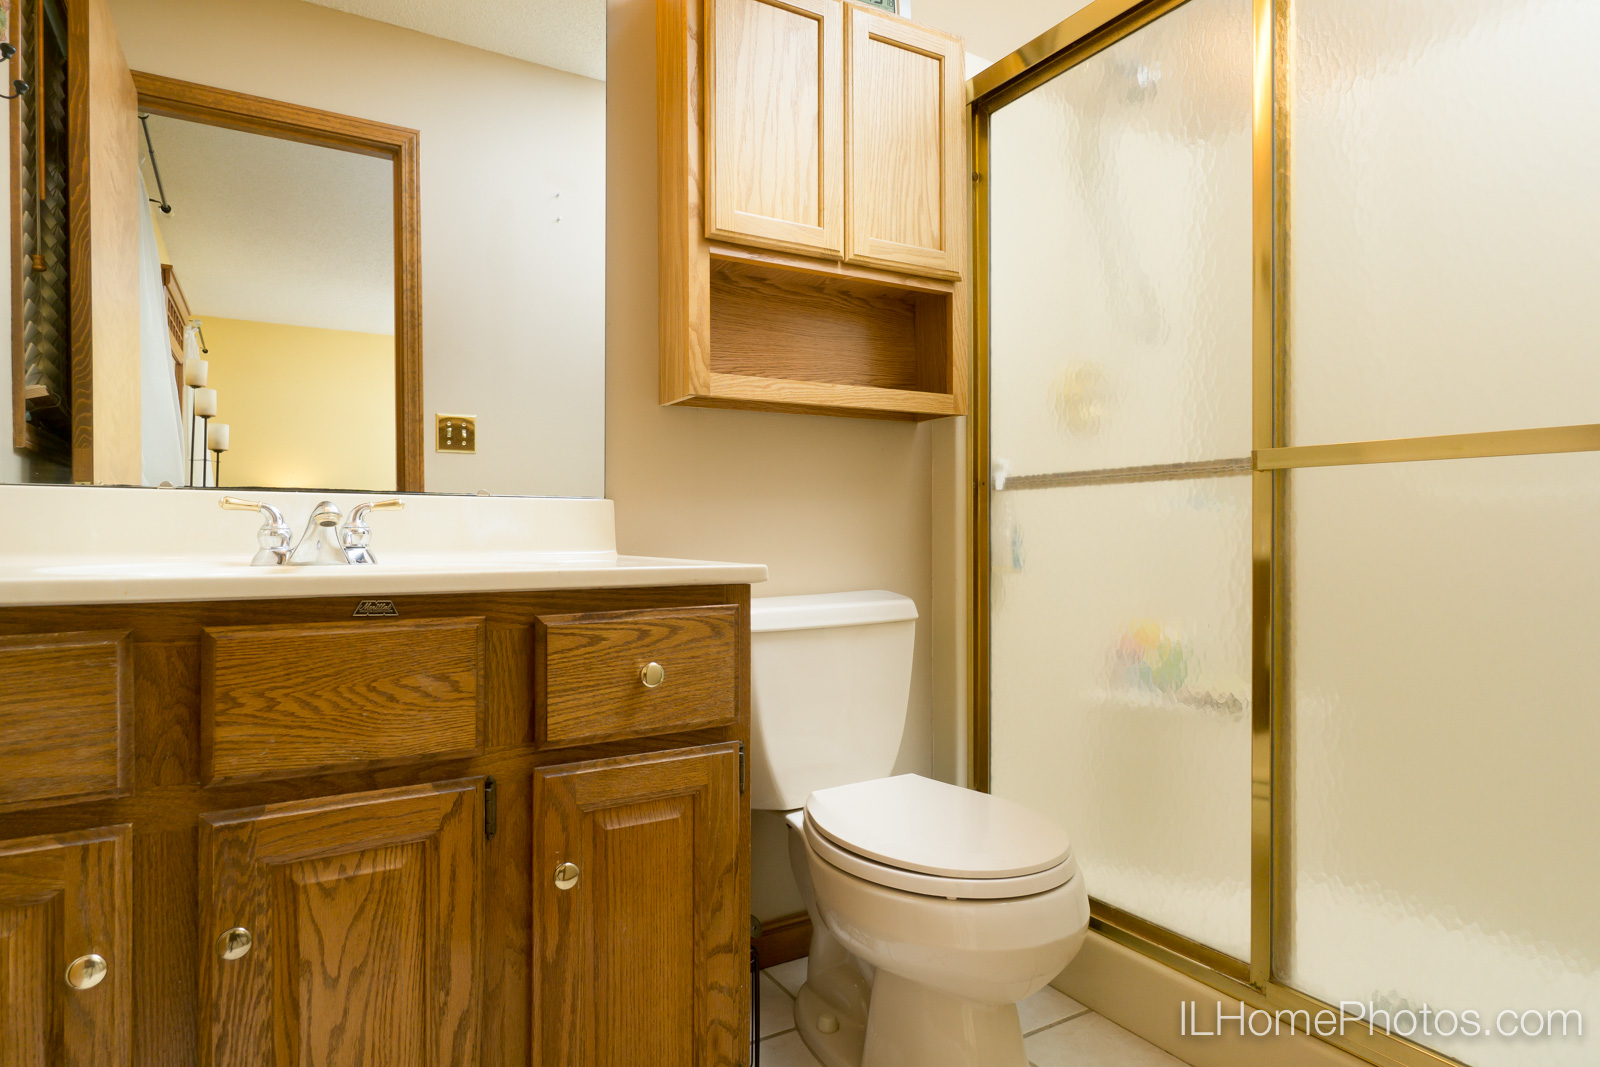 Interior master bathroom photograph for real estate in Peoria, IL :: Illinois Home Photography by Michael Gowin, Lincoln, IL